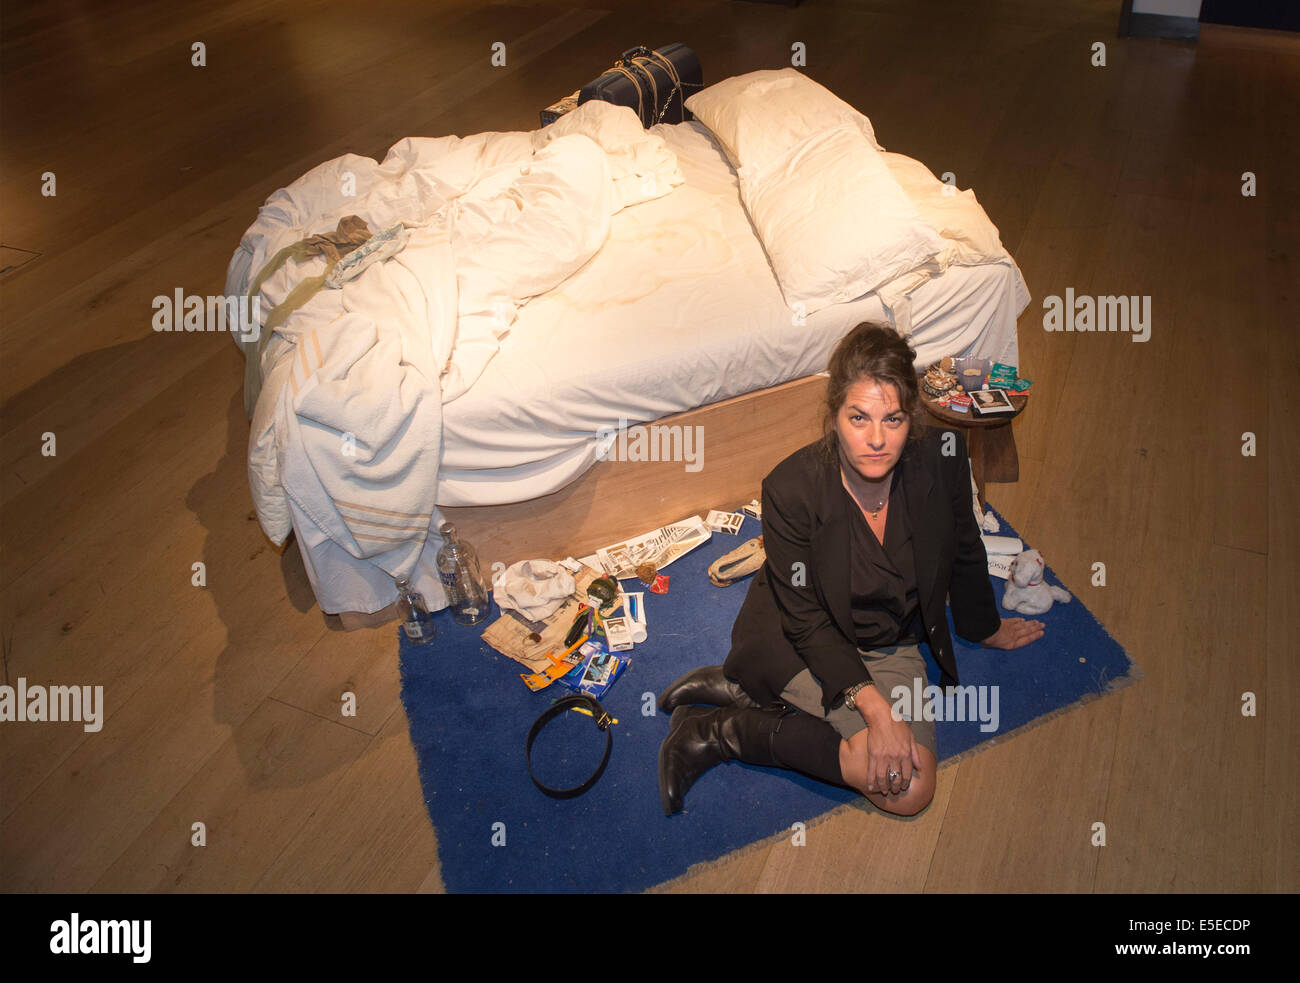 Christie's London. Tracey Emin's 'My Bed'  (1998) on the market and sold  for £2.2m in July - Stock Image